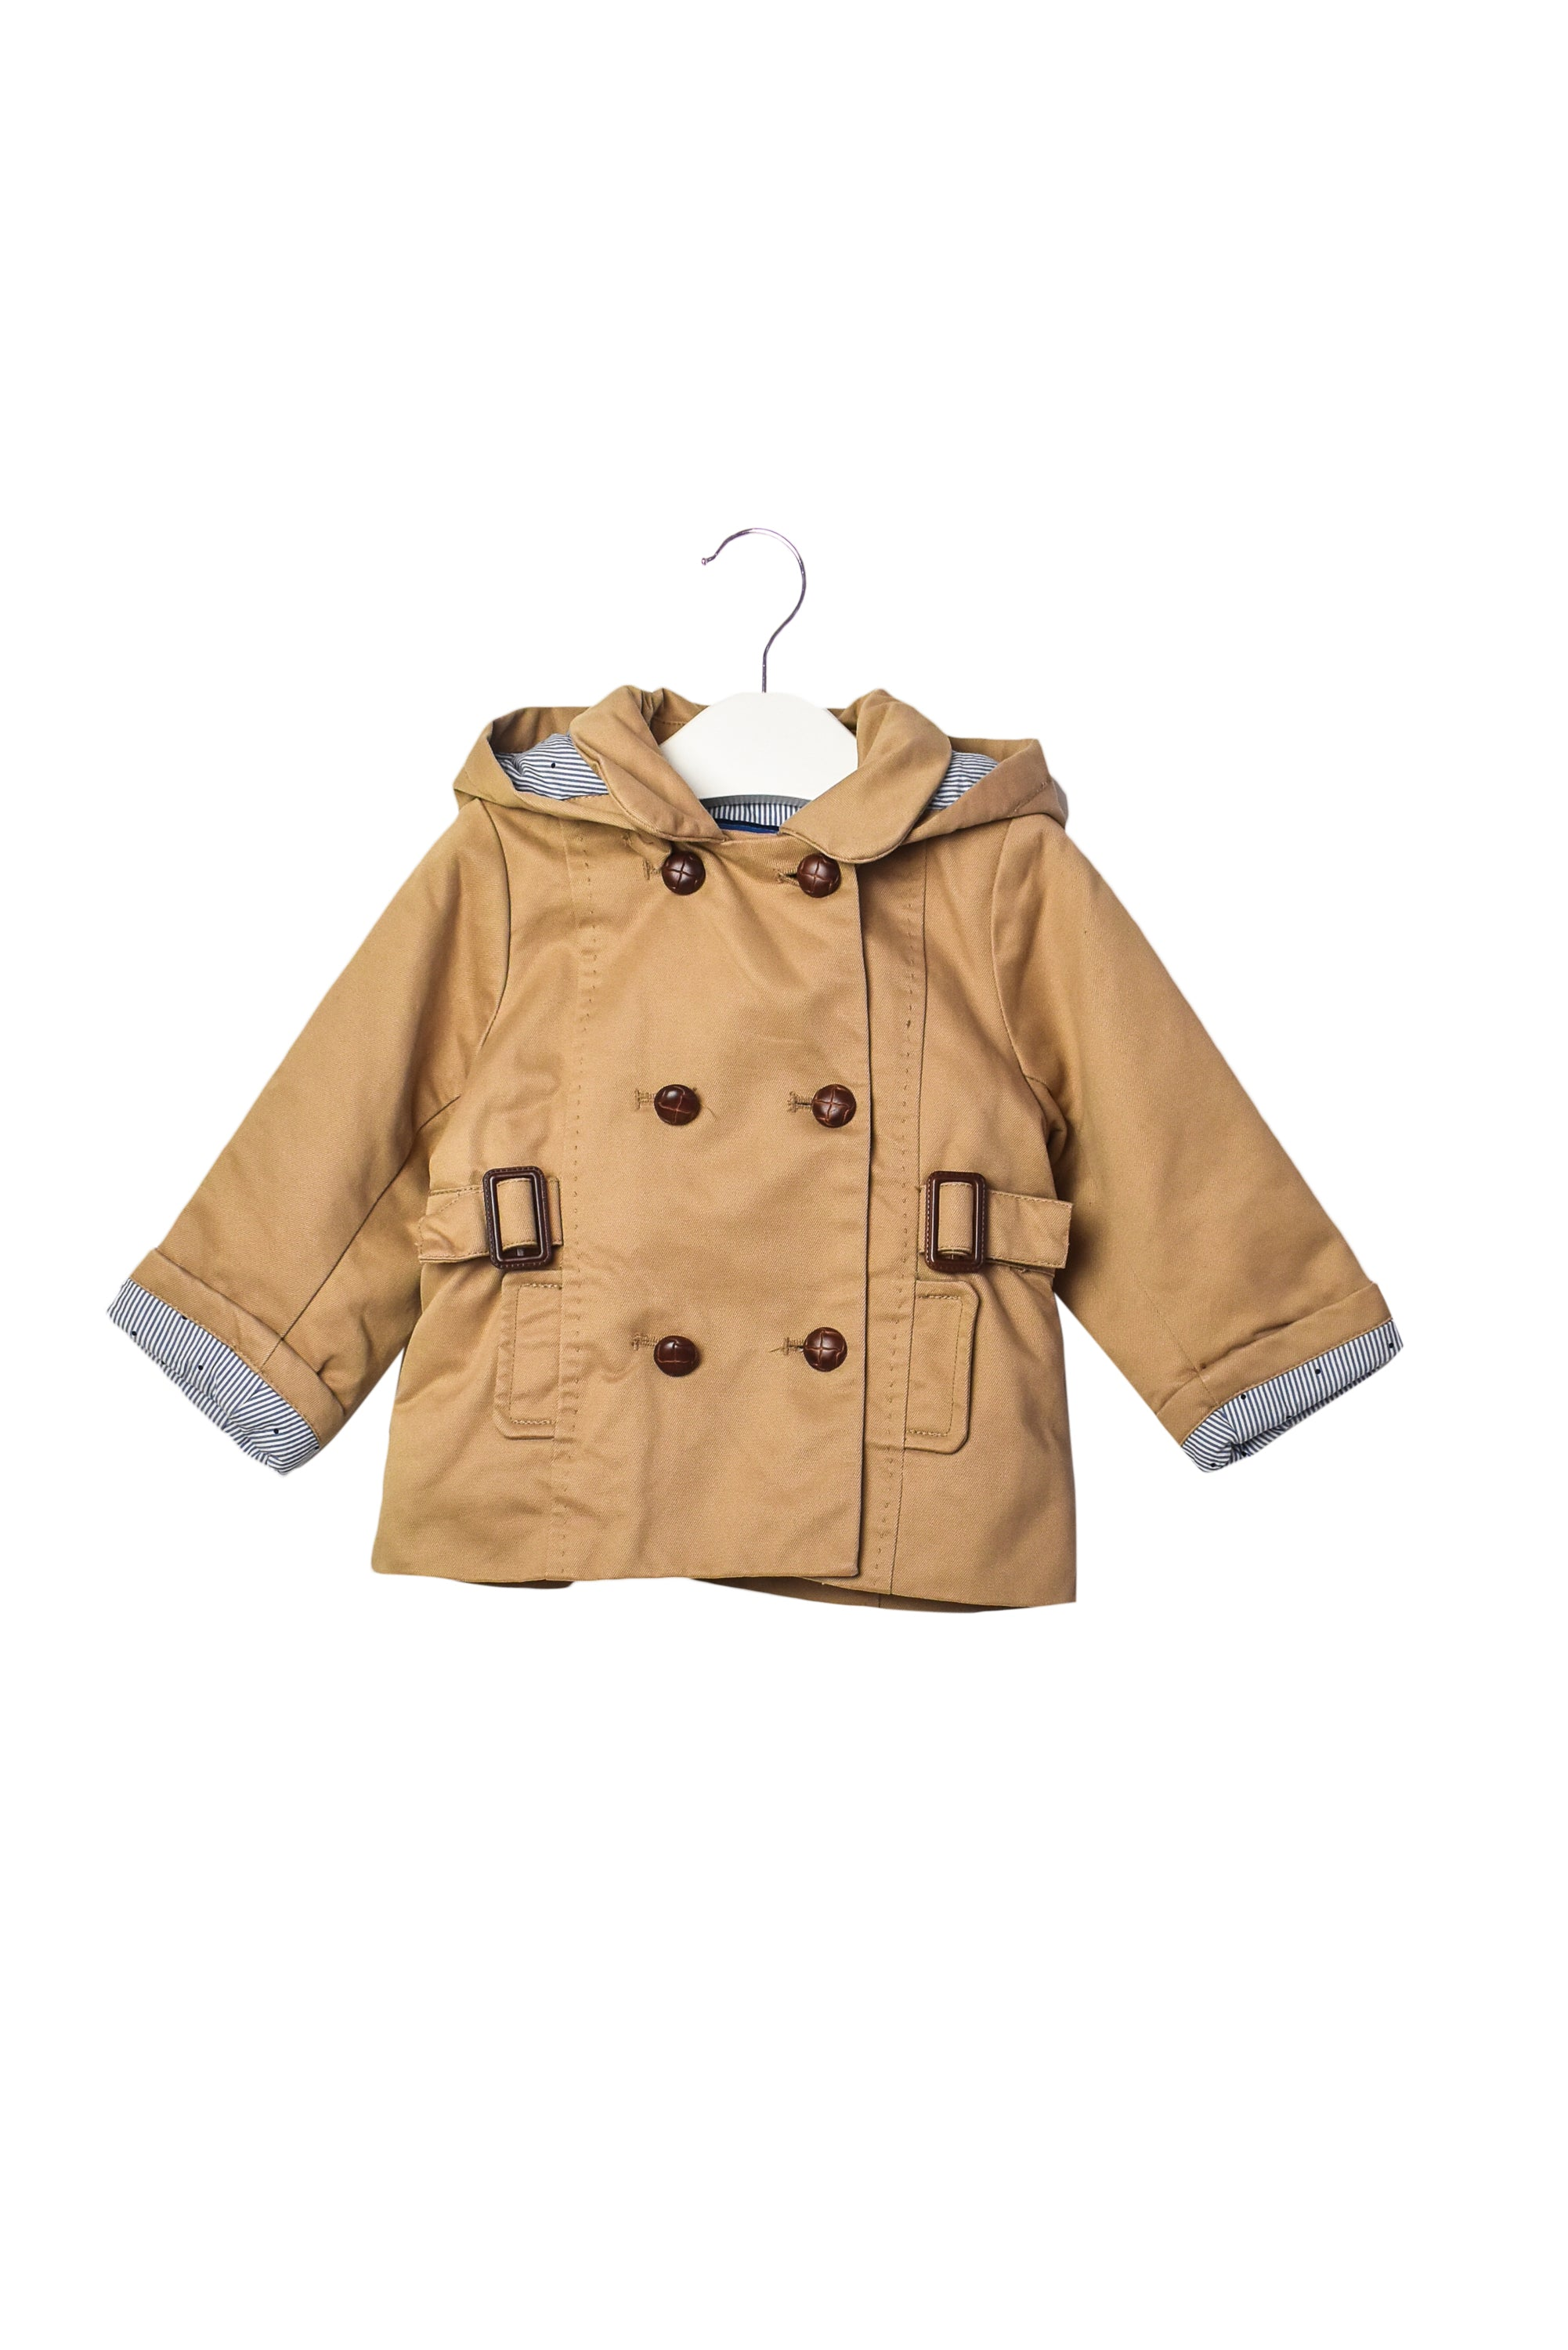 10006639 Jacadi Baby~Coat 12M at Retykle